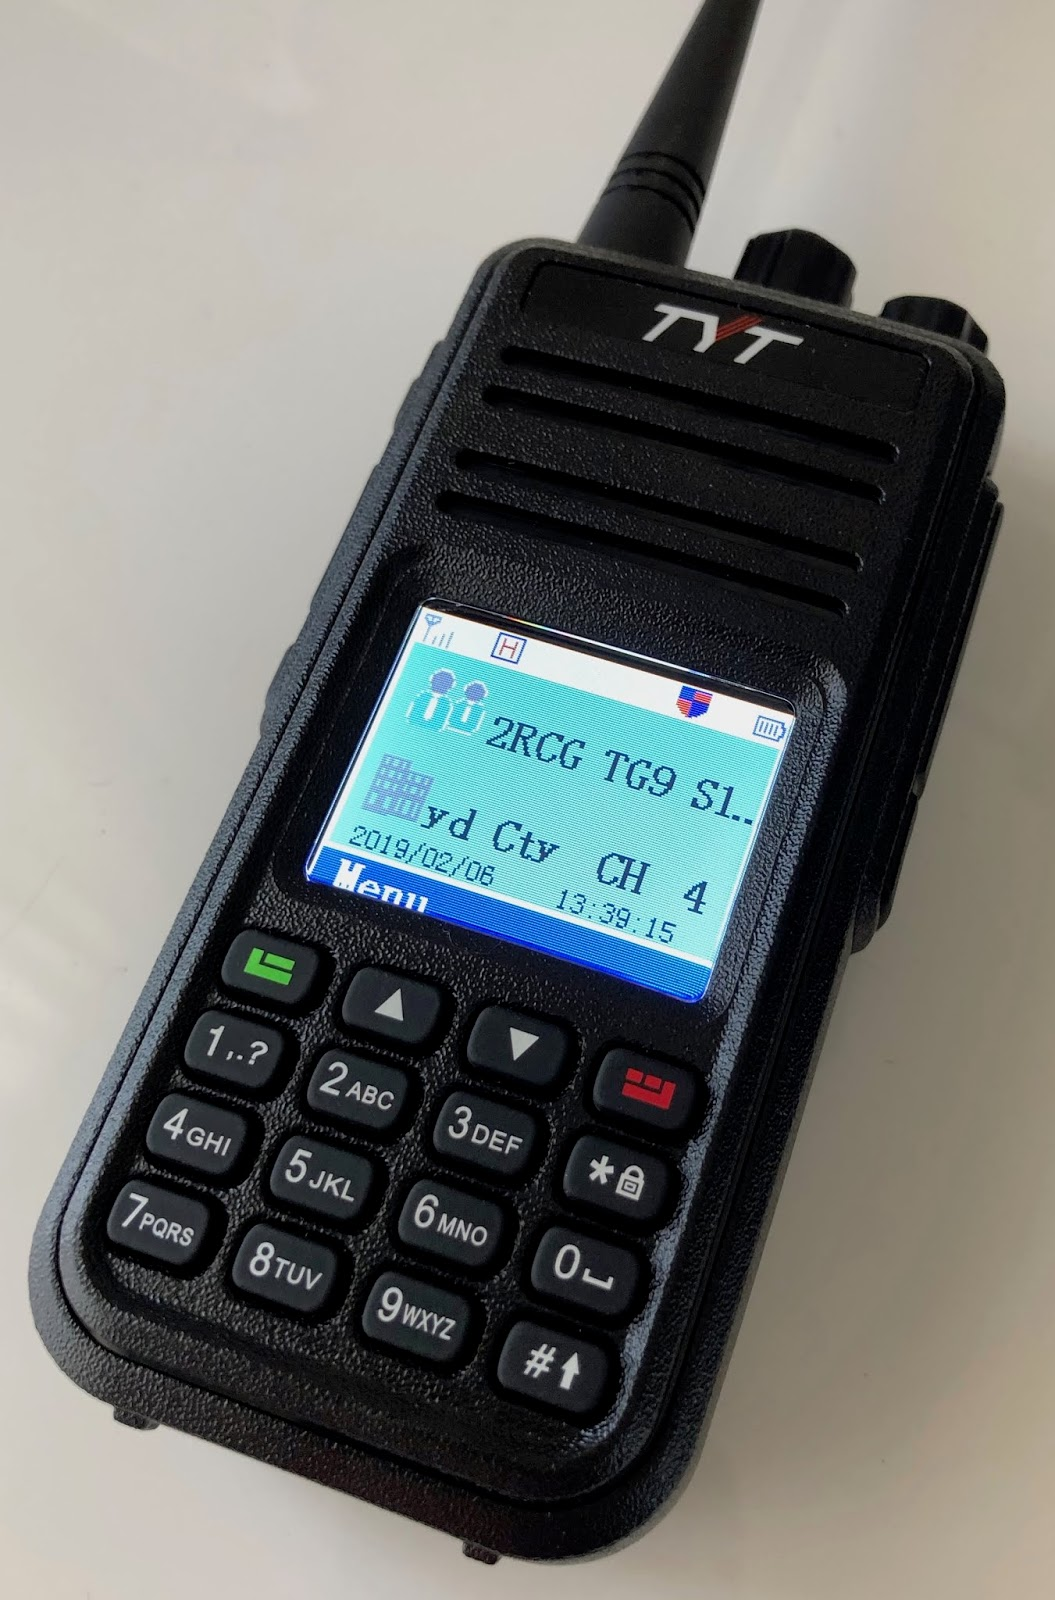 marxy's musing on technology: TYT MD-380 DMR getting started in Sydney